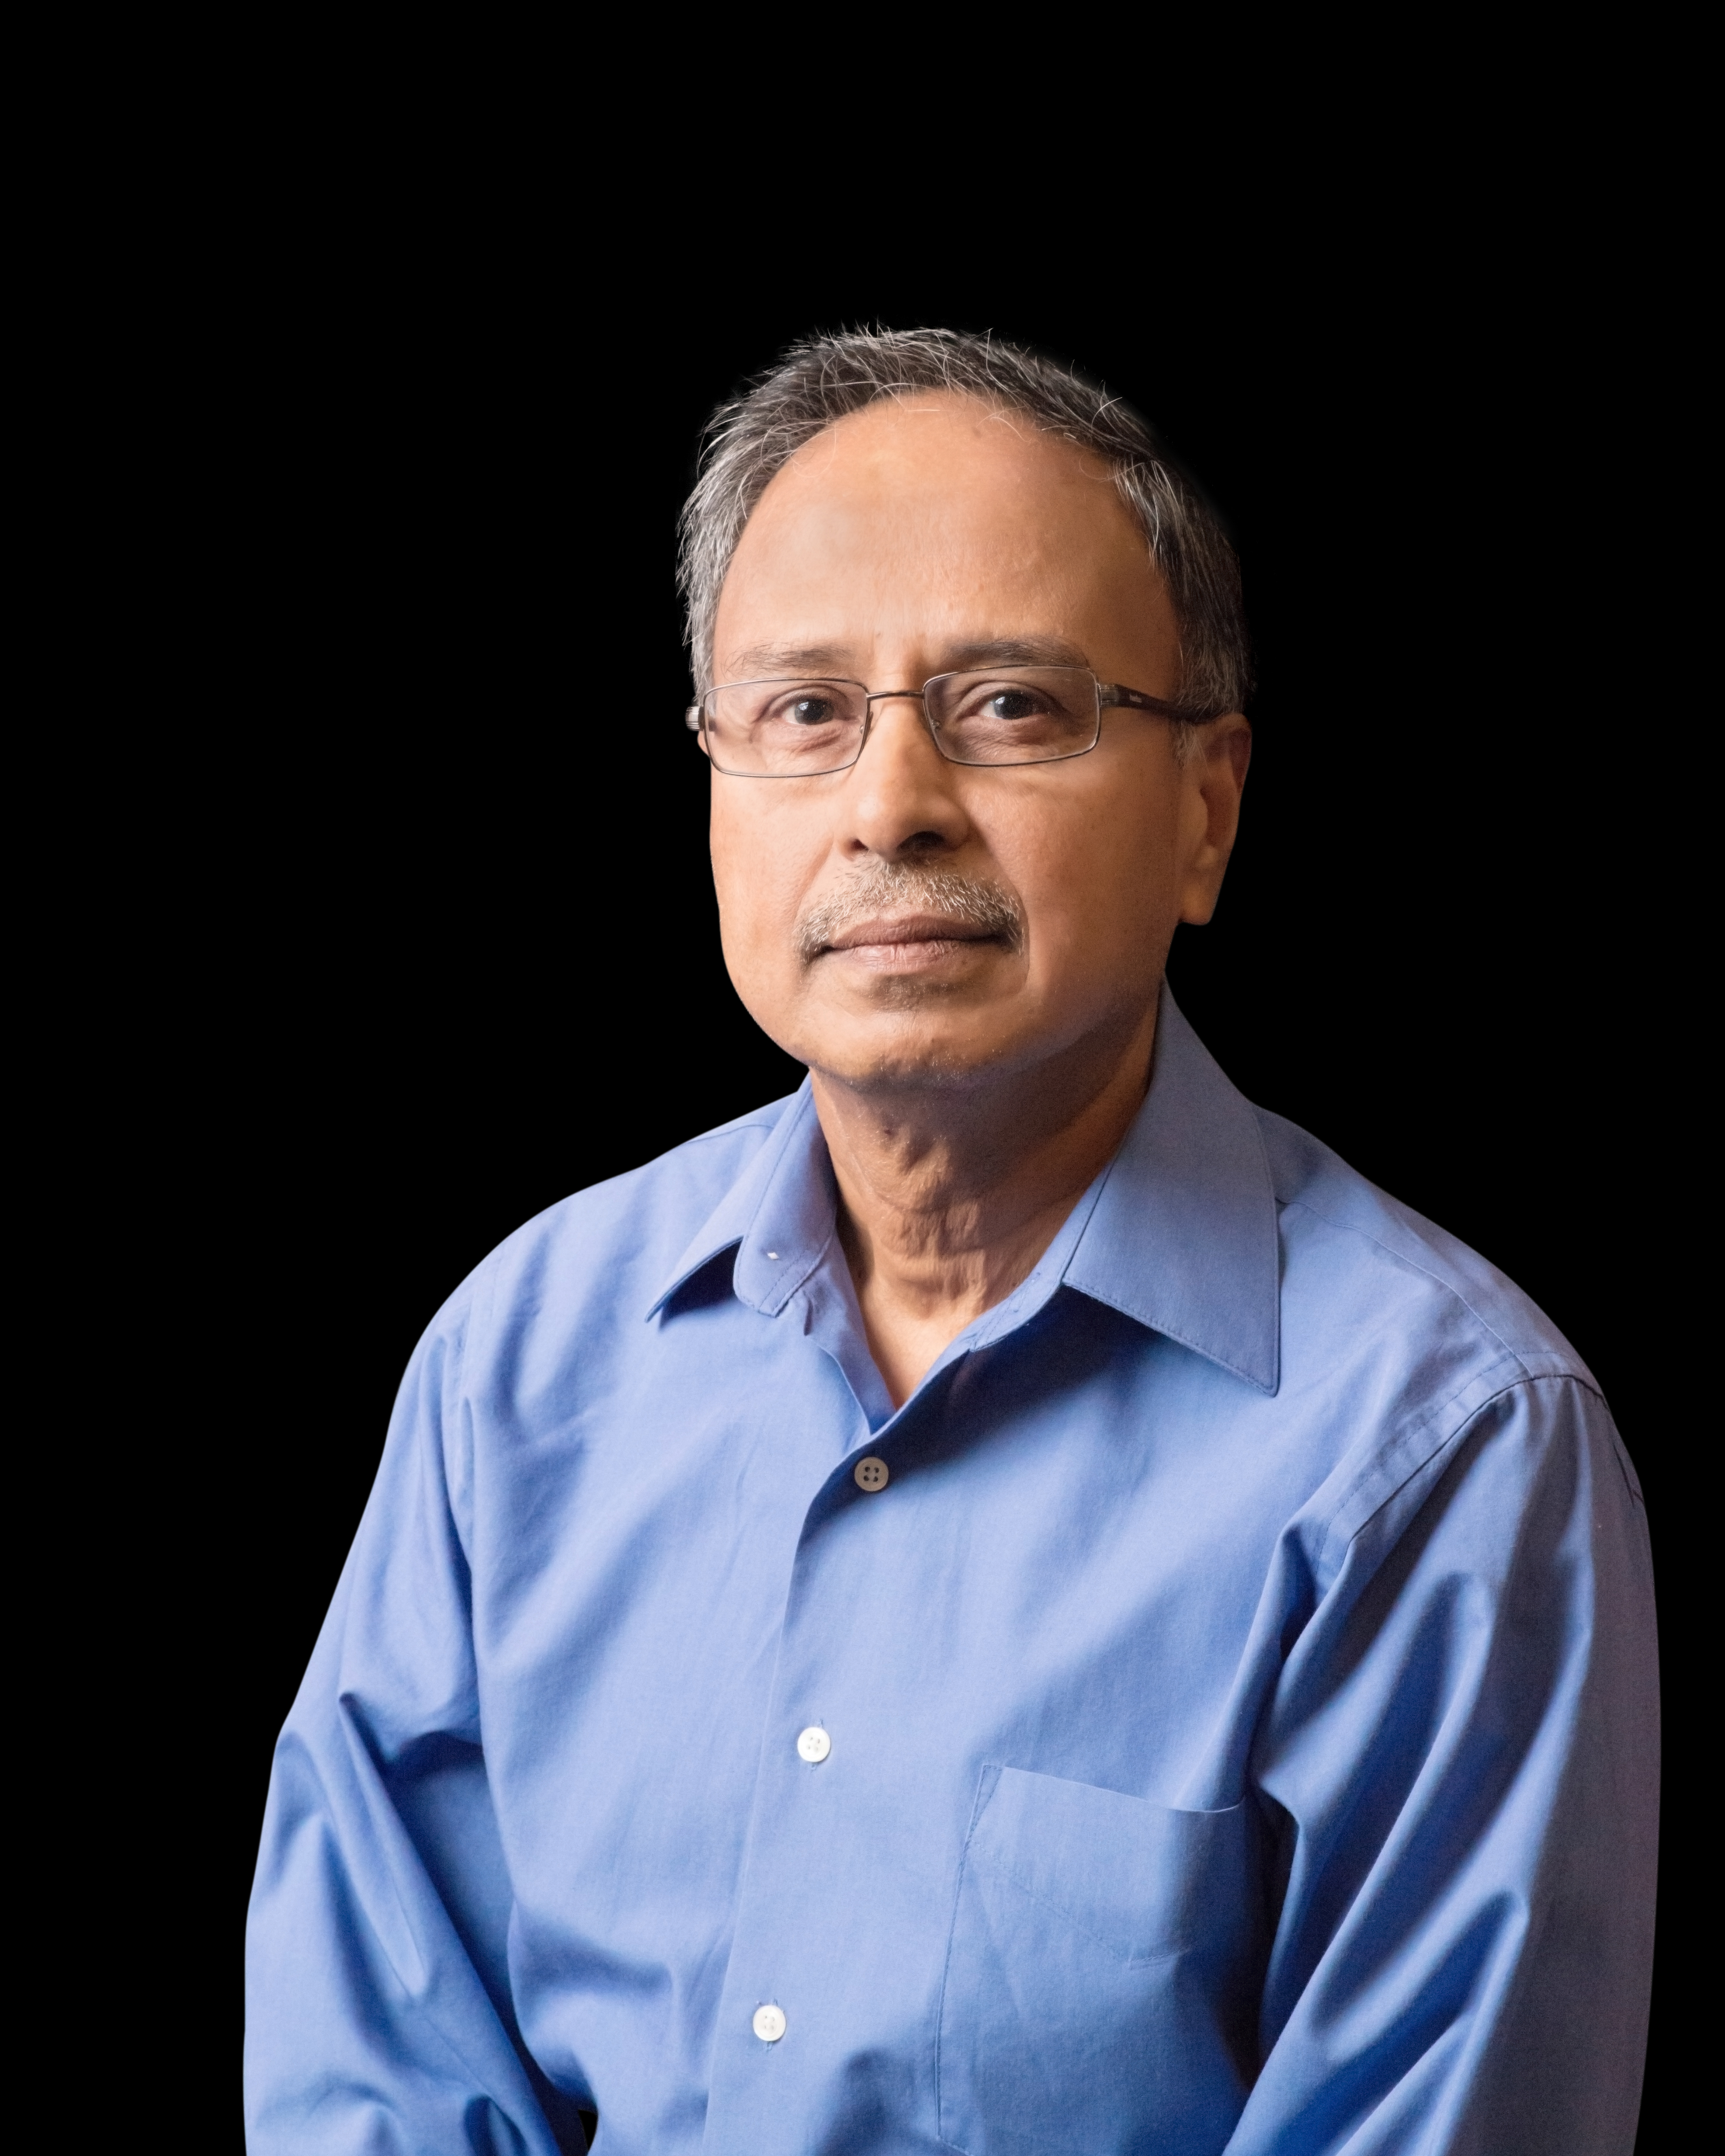 portrait image of Mali Subbiah